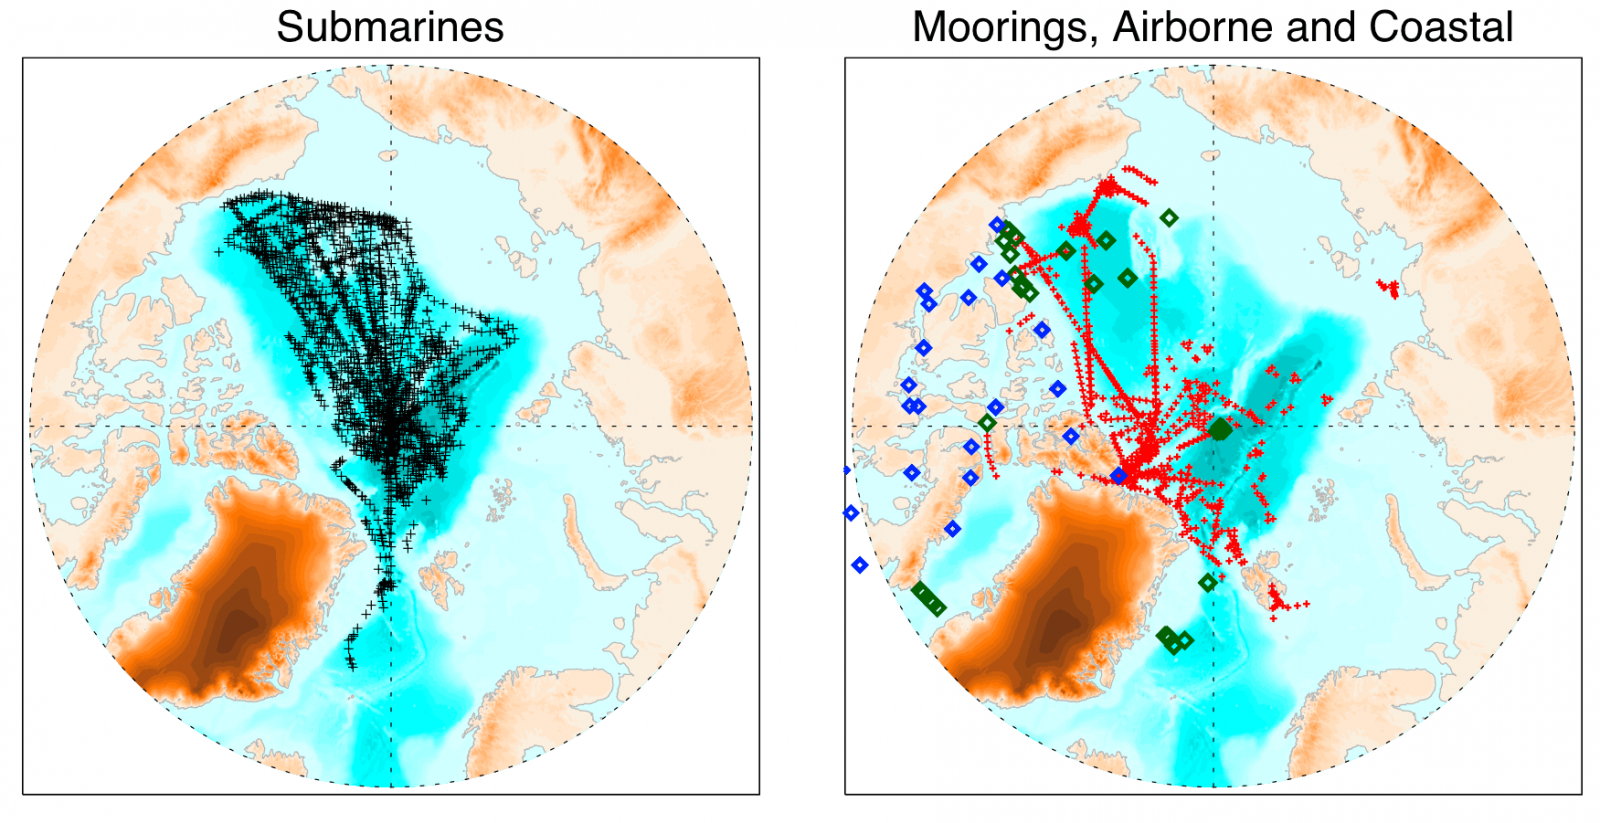 Locations of submarine, morring, airborne, and coastal observations